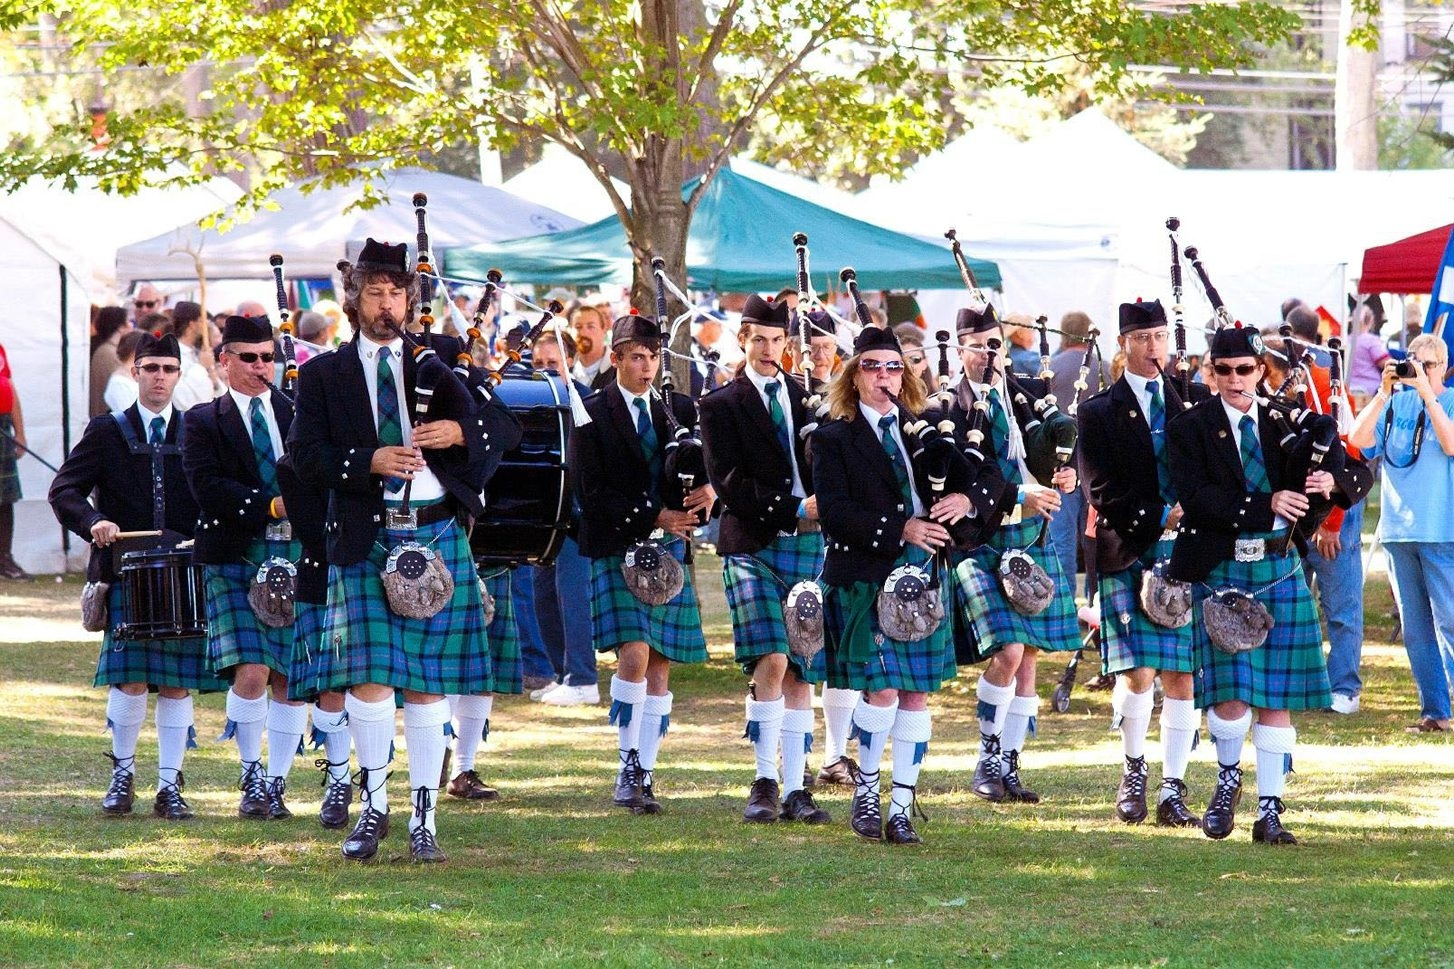 Immerse yourself in the Gaelic culture at the Niagara Celtic Heritage Festival and Highland Games, which will be held in Olcott this weekend.